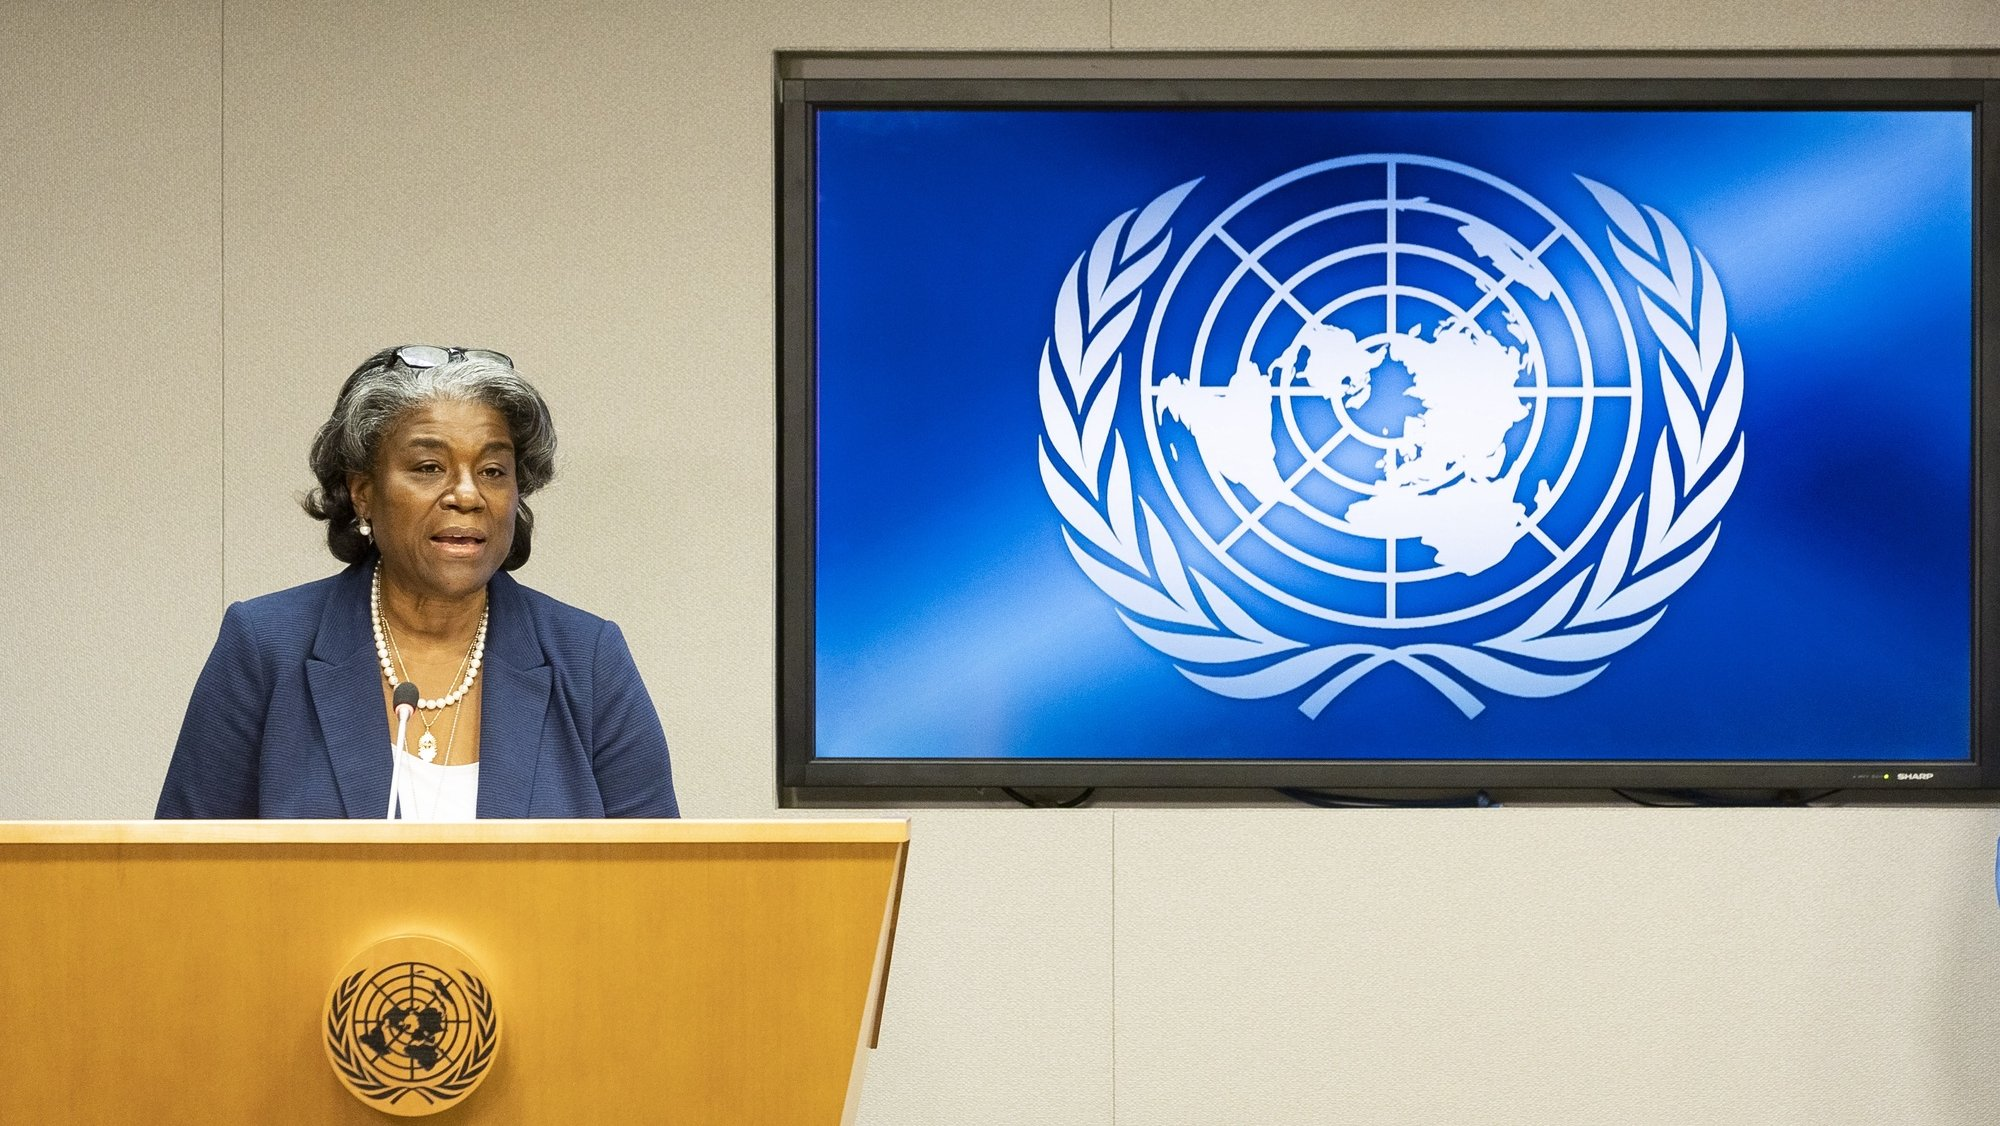 epa09045277 Linda Thomas-Greenfield, the United States' new ambassador to the United Nations, holds her first press conference as the United States is set to take the presidency of the UN Security Council for the month, at United Nations headquarters in New York, New York, USA, 01 March 2021.  EPA/JUSTIN LANE